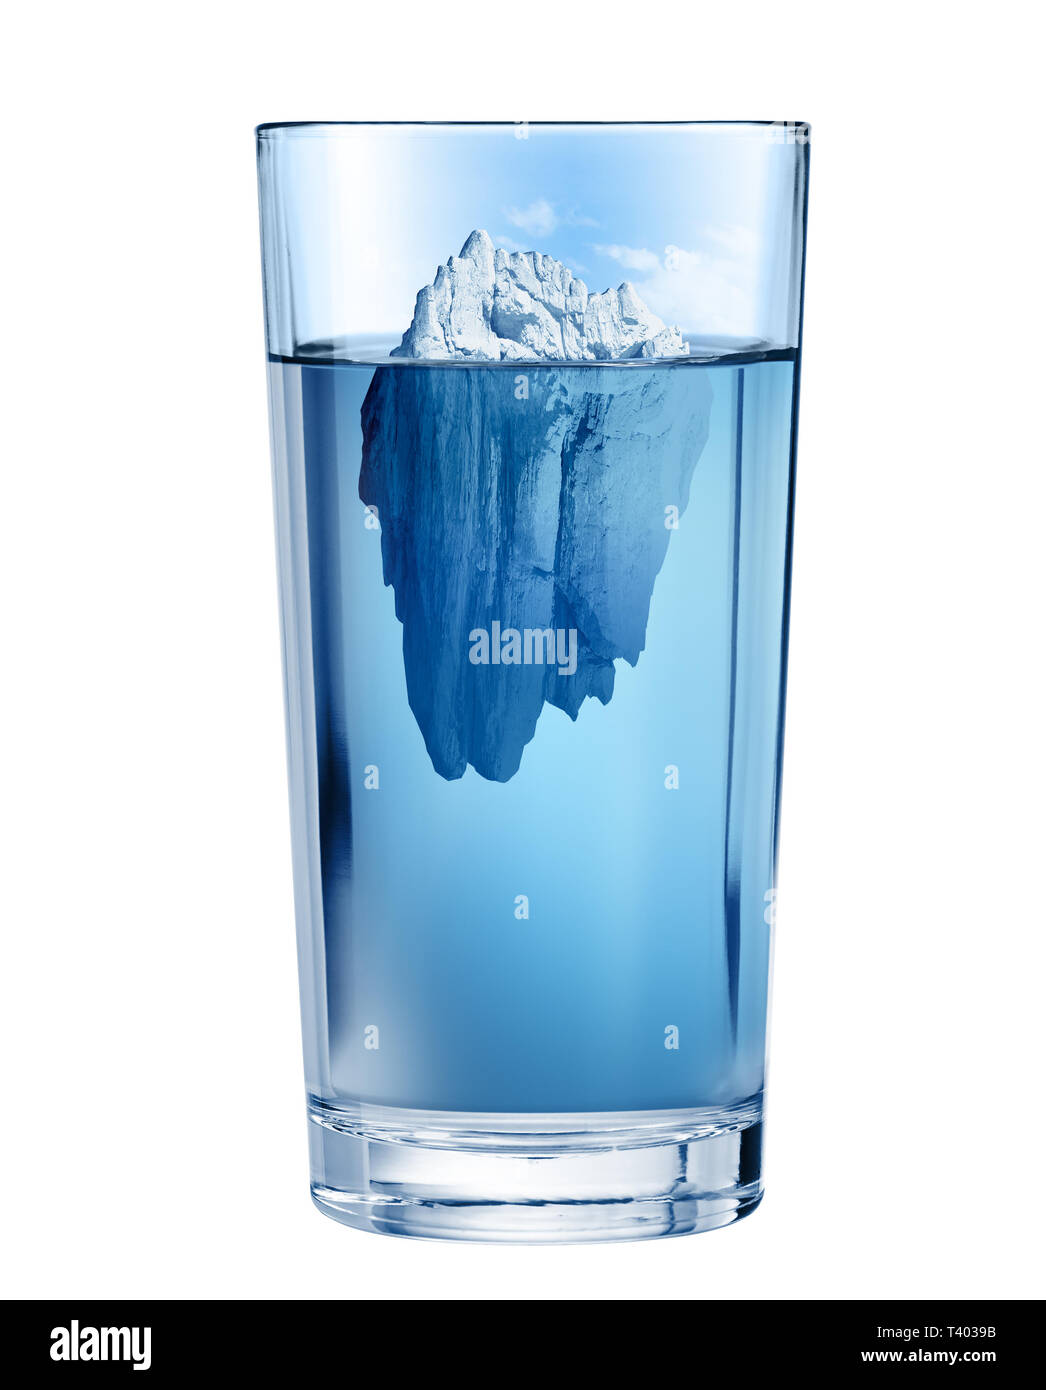 Iceberg in glass. Fresh water depletion environment concept. Isolated with clipping path included. - Stock Image